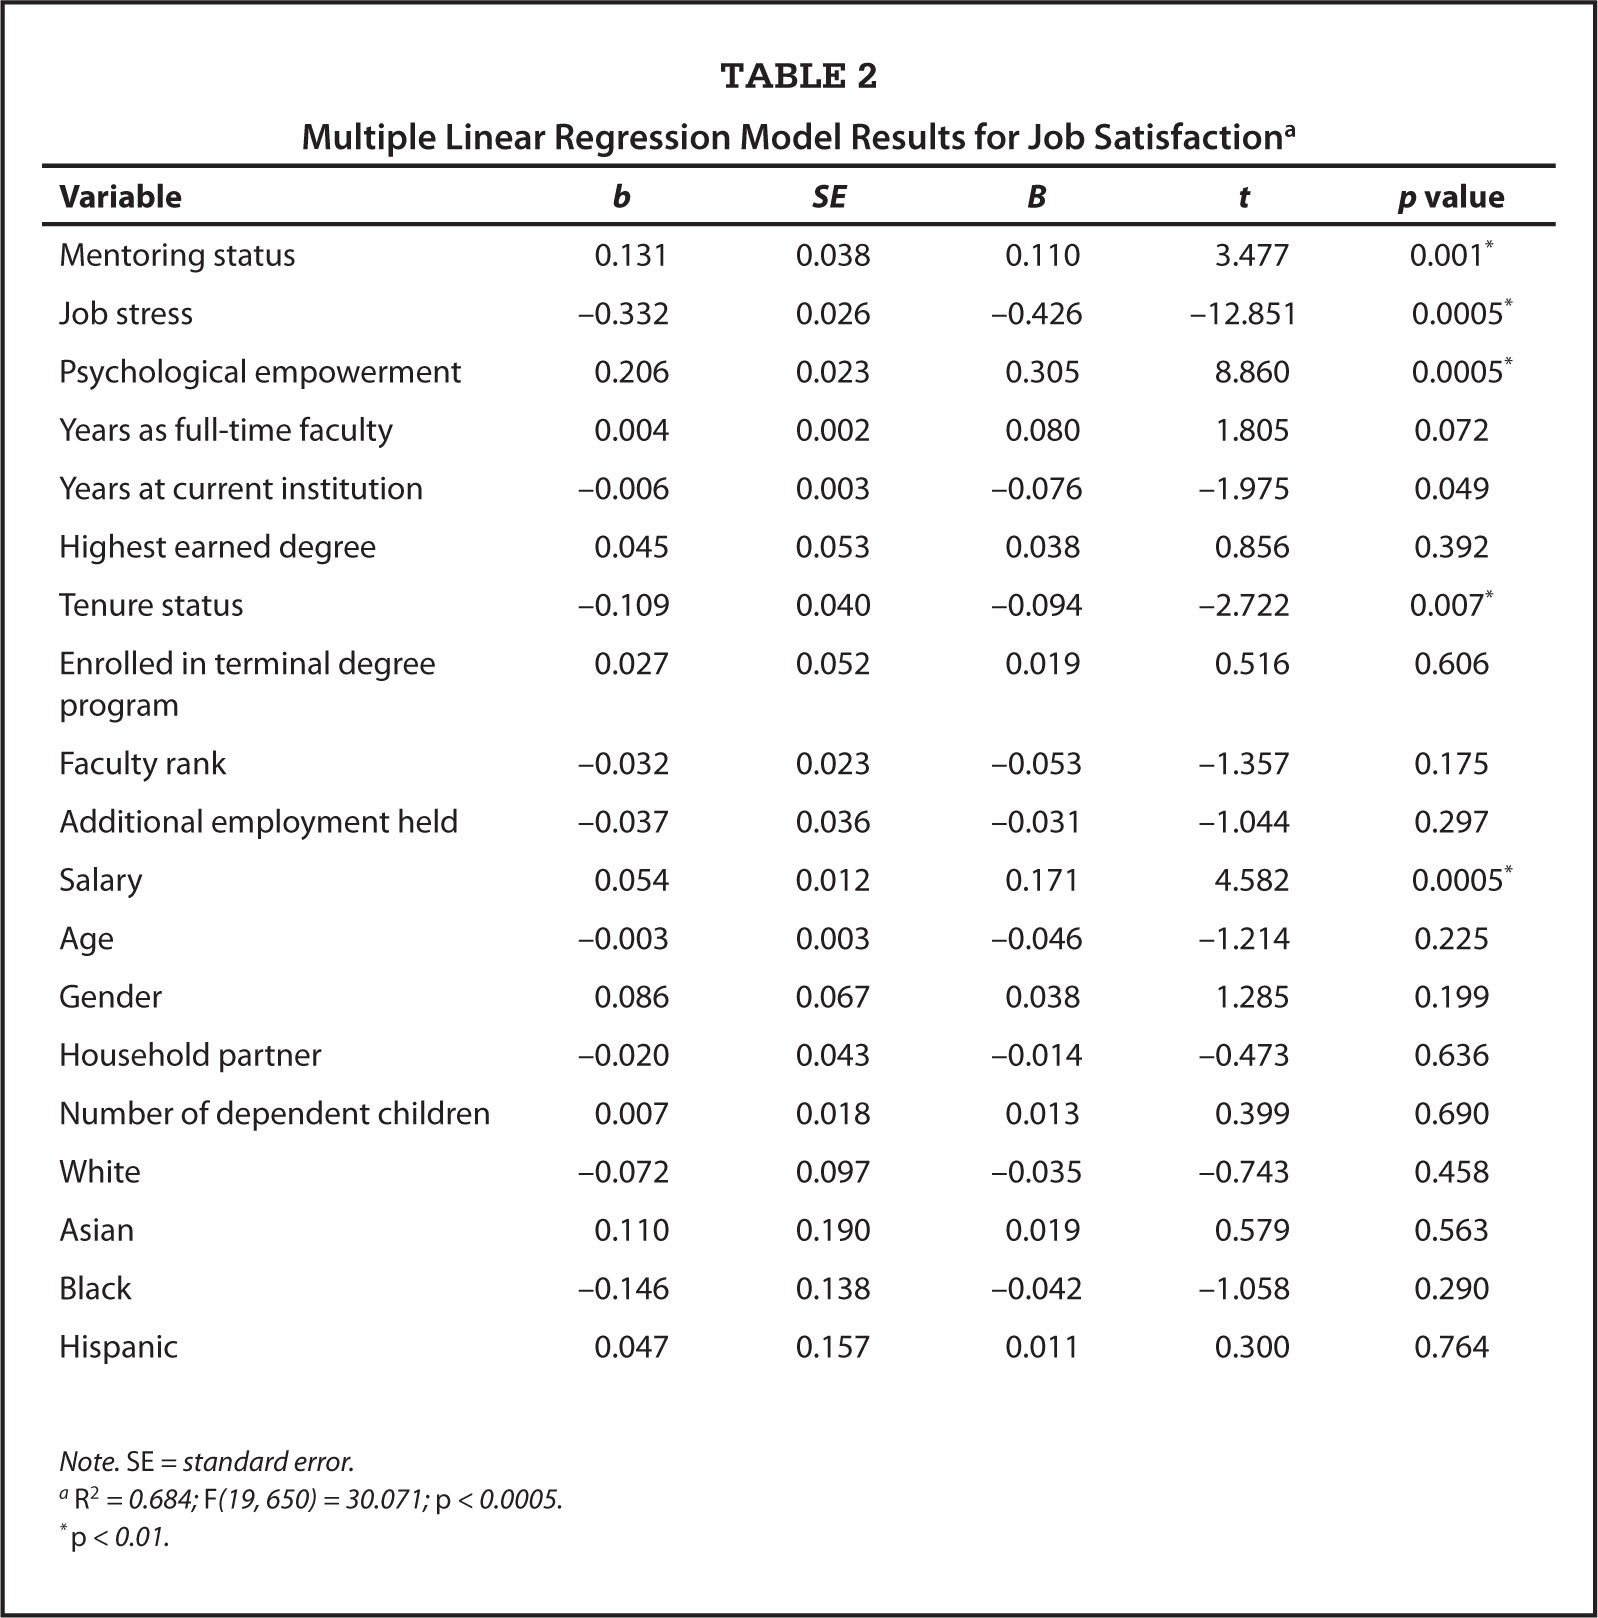 Multiple Linear Regression Model Results for Job Satisfactiona